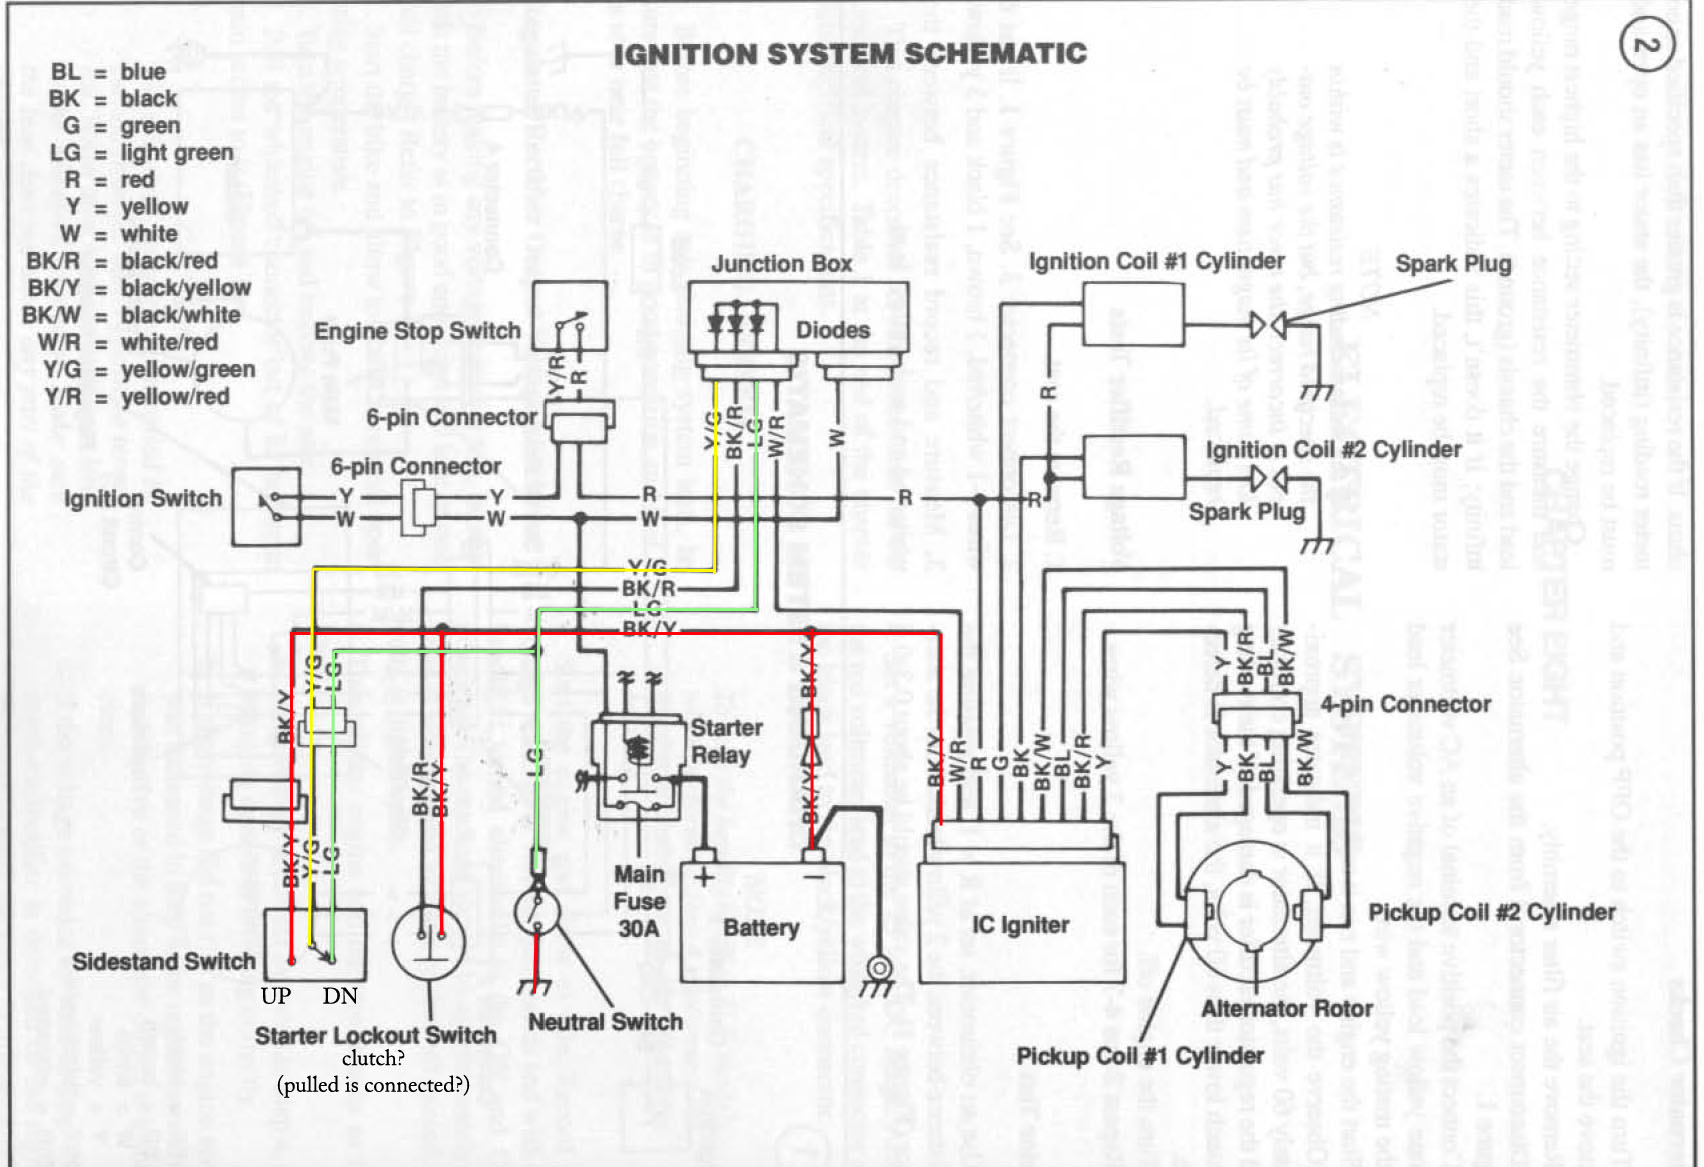 Kawasaki_EX_500_ignition a klf 300 wiring diagram klt 250 wiring diagram wiring diagram klf 300 wiring diagram at crackthecode.co